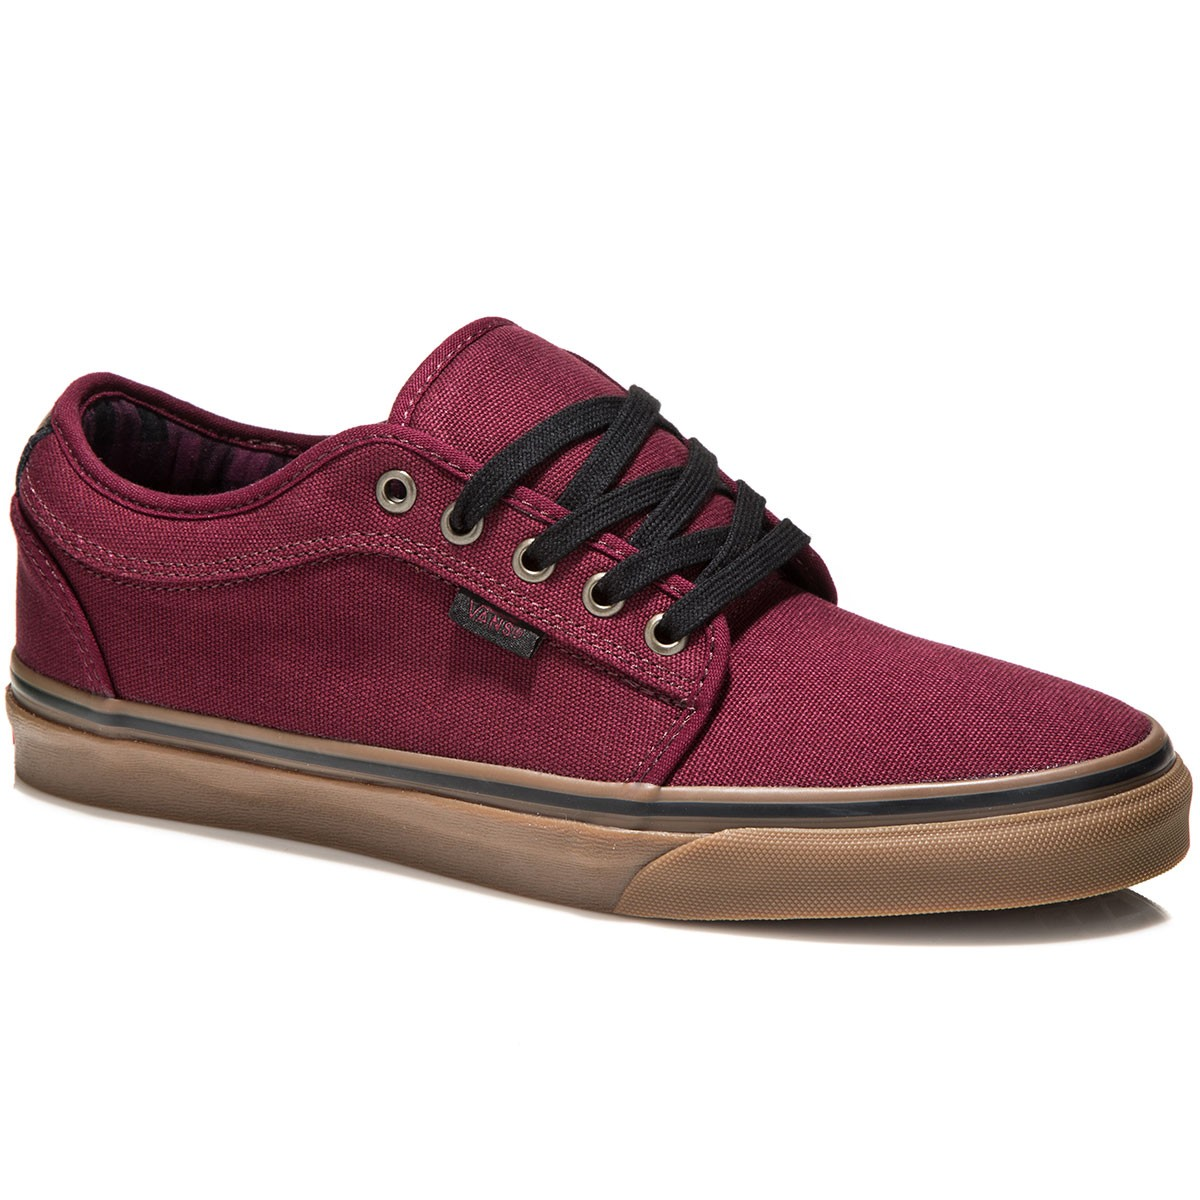 Vans Chukka Low Shoes - Plaid/Port - 8.0